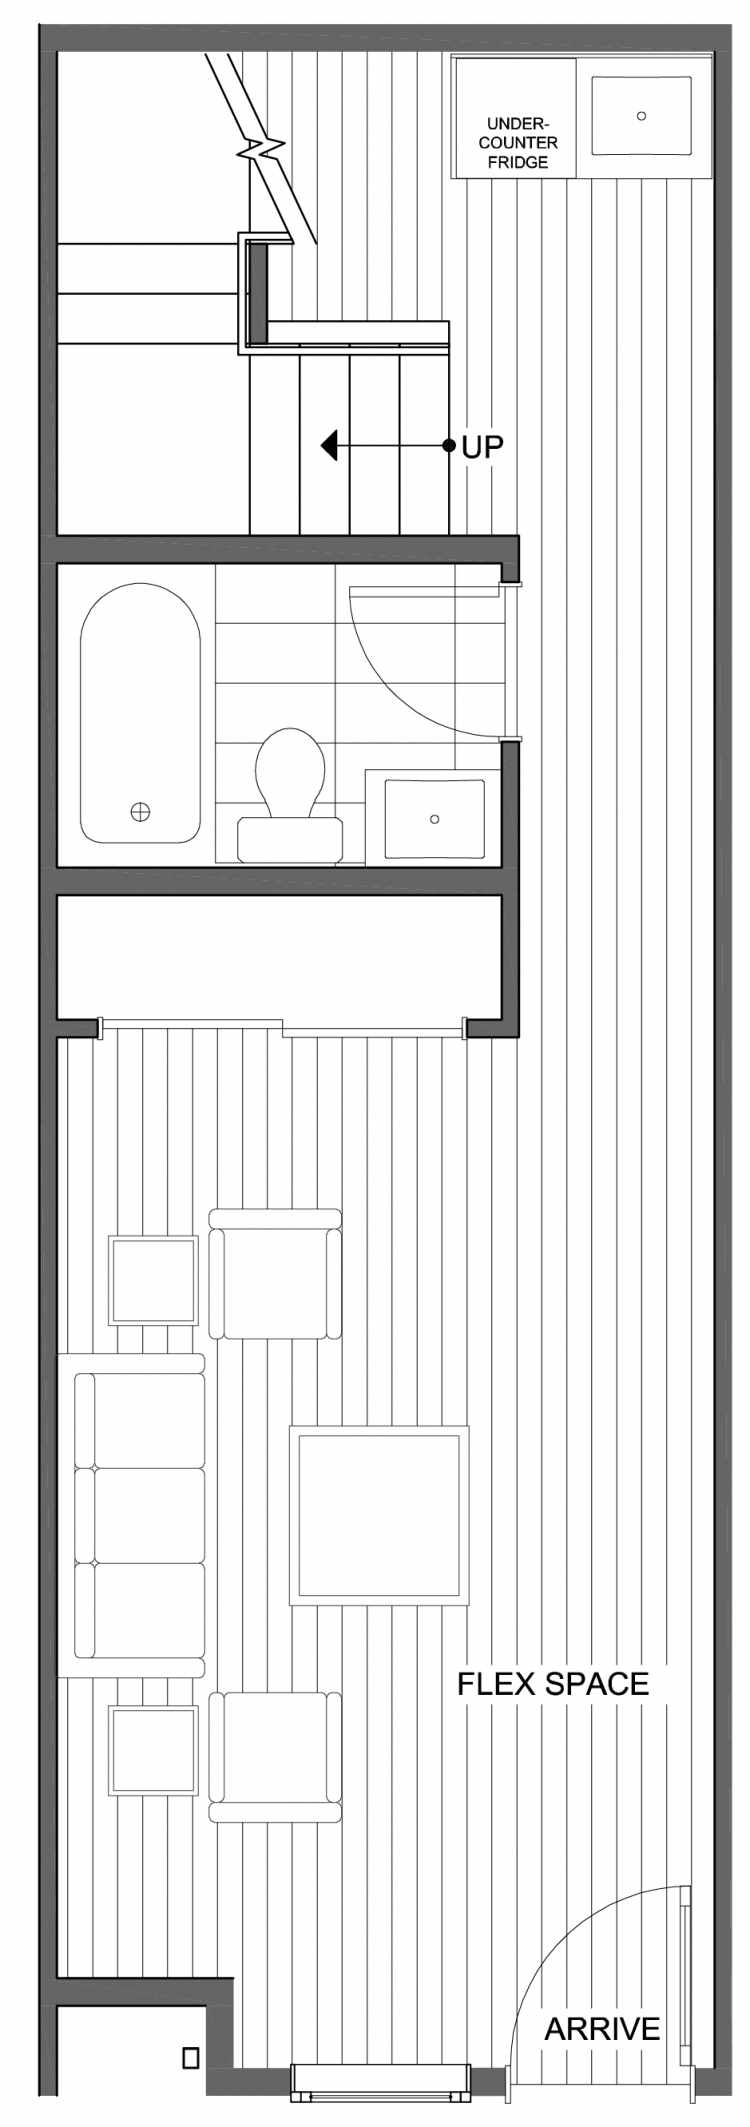 First Floor Plan of 806F N 46th St, One of the Nino 15 East Townhomes by Isola Homes